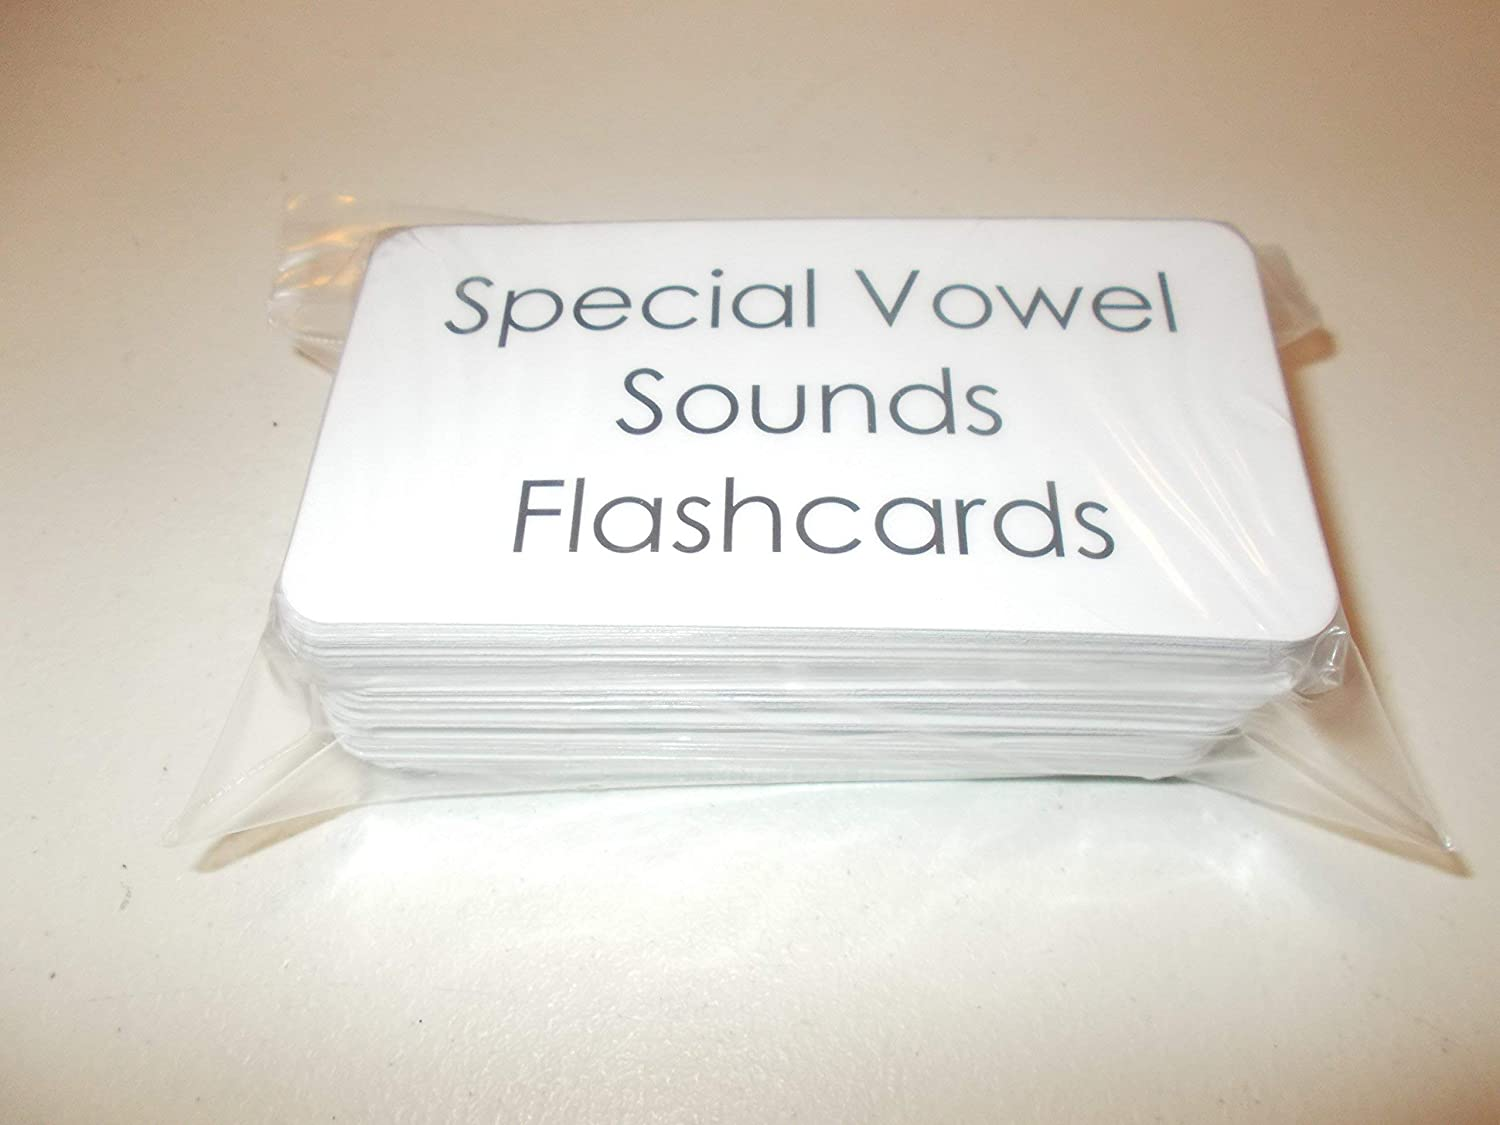 101 Laminated Special Vowel Sounds Flash Cards.